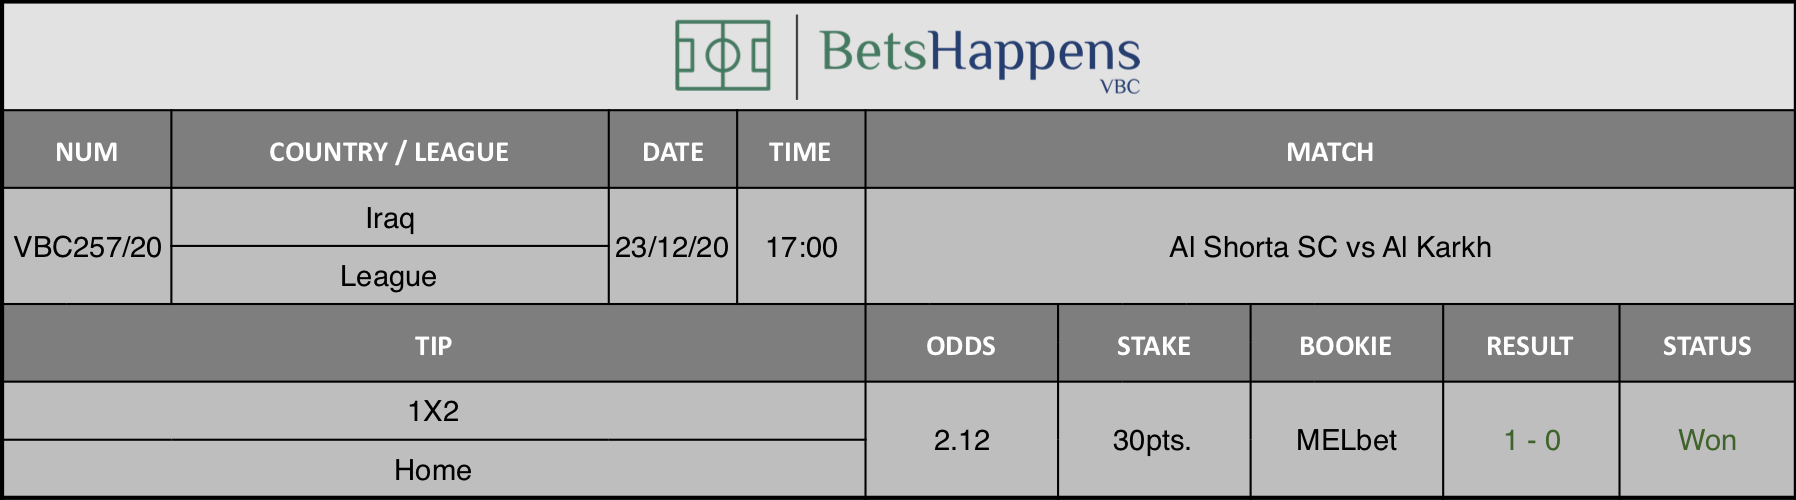 Results of our tip for the Al Shorta SC vs Al Karkh match where 1X2 F/T Home is recommended.